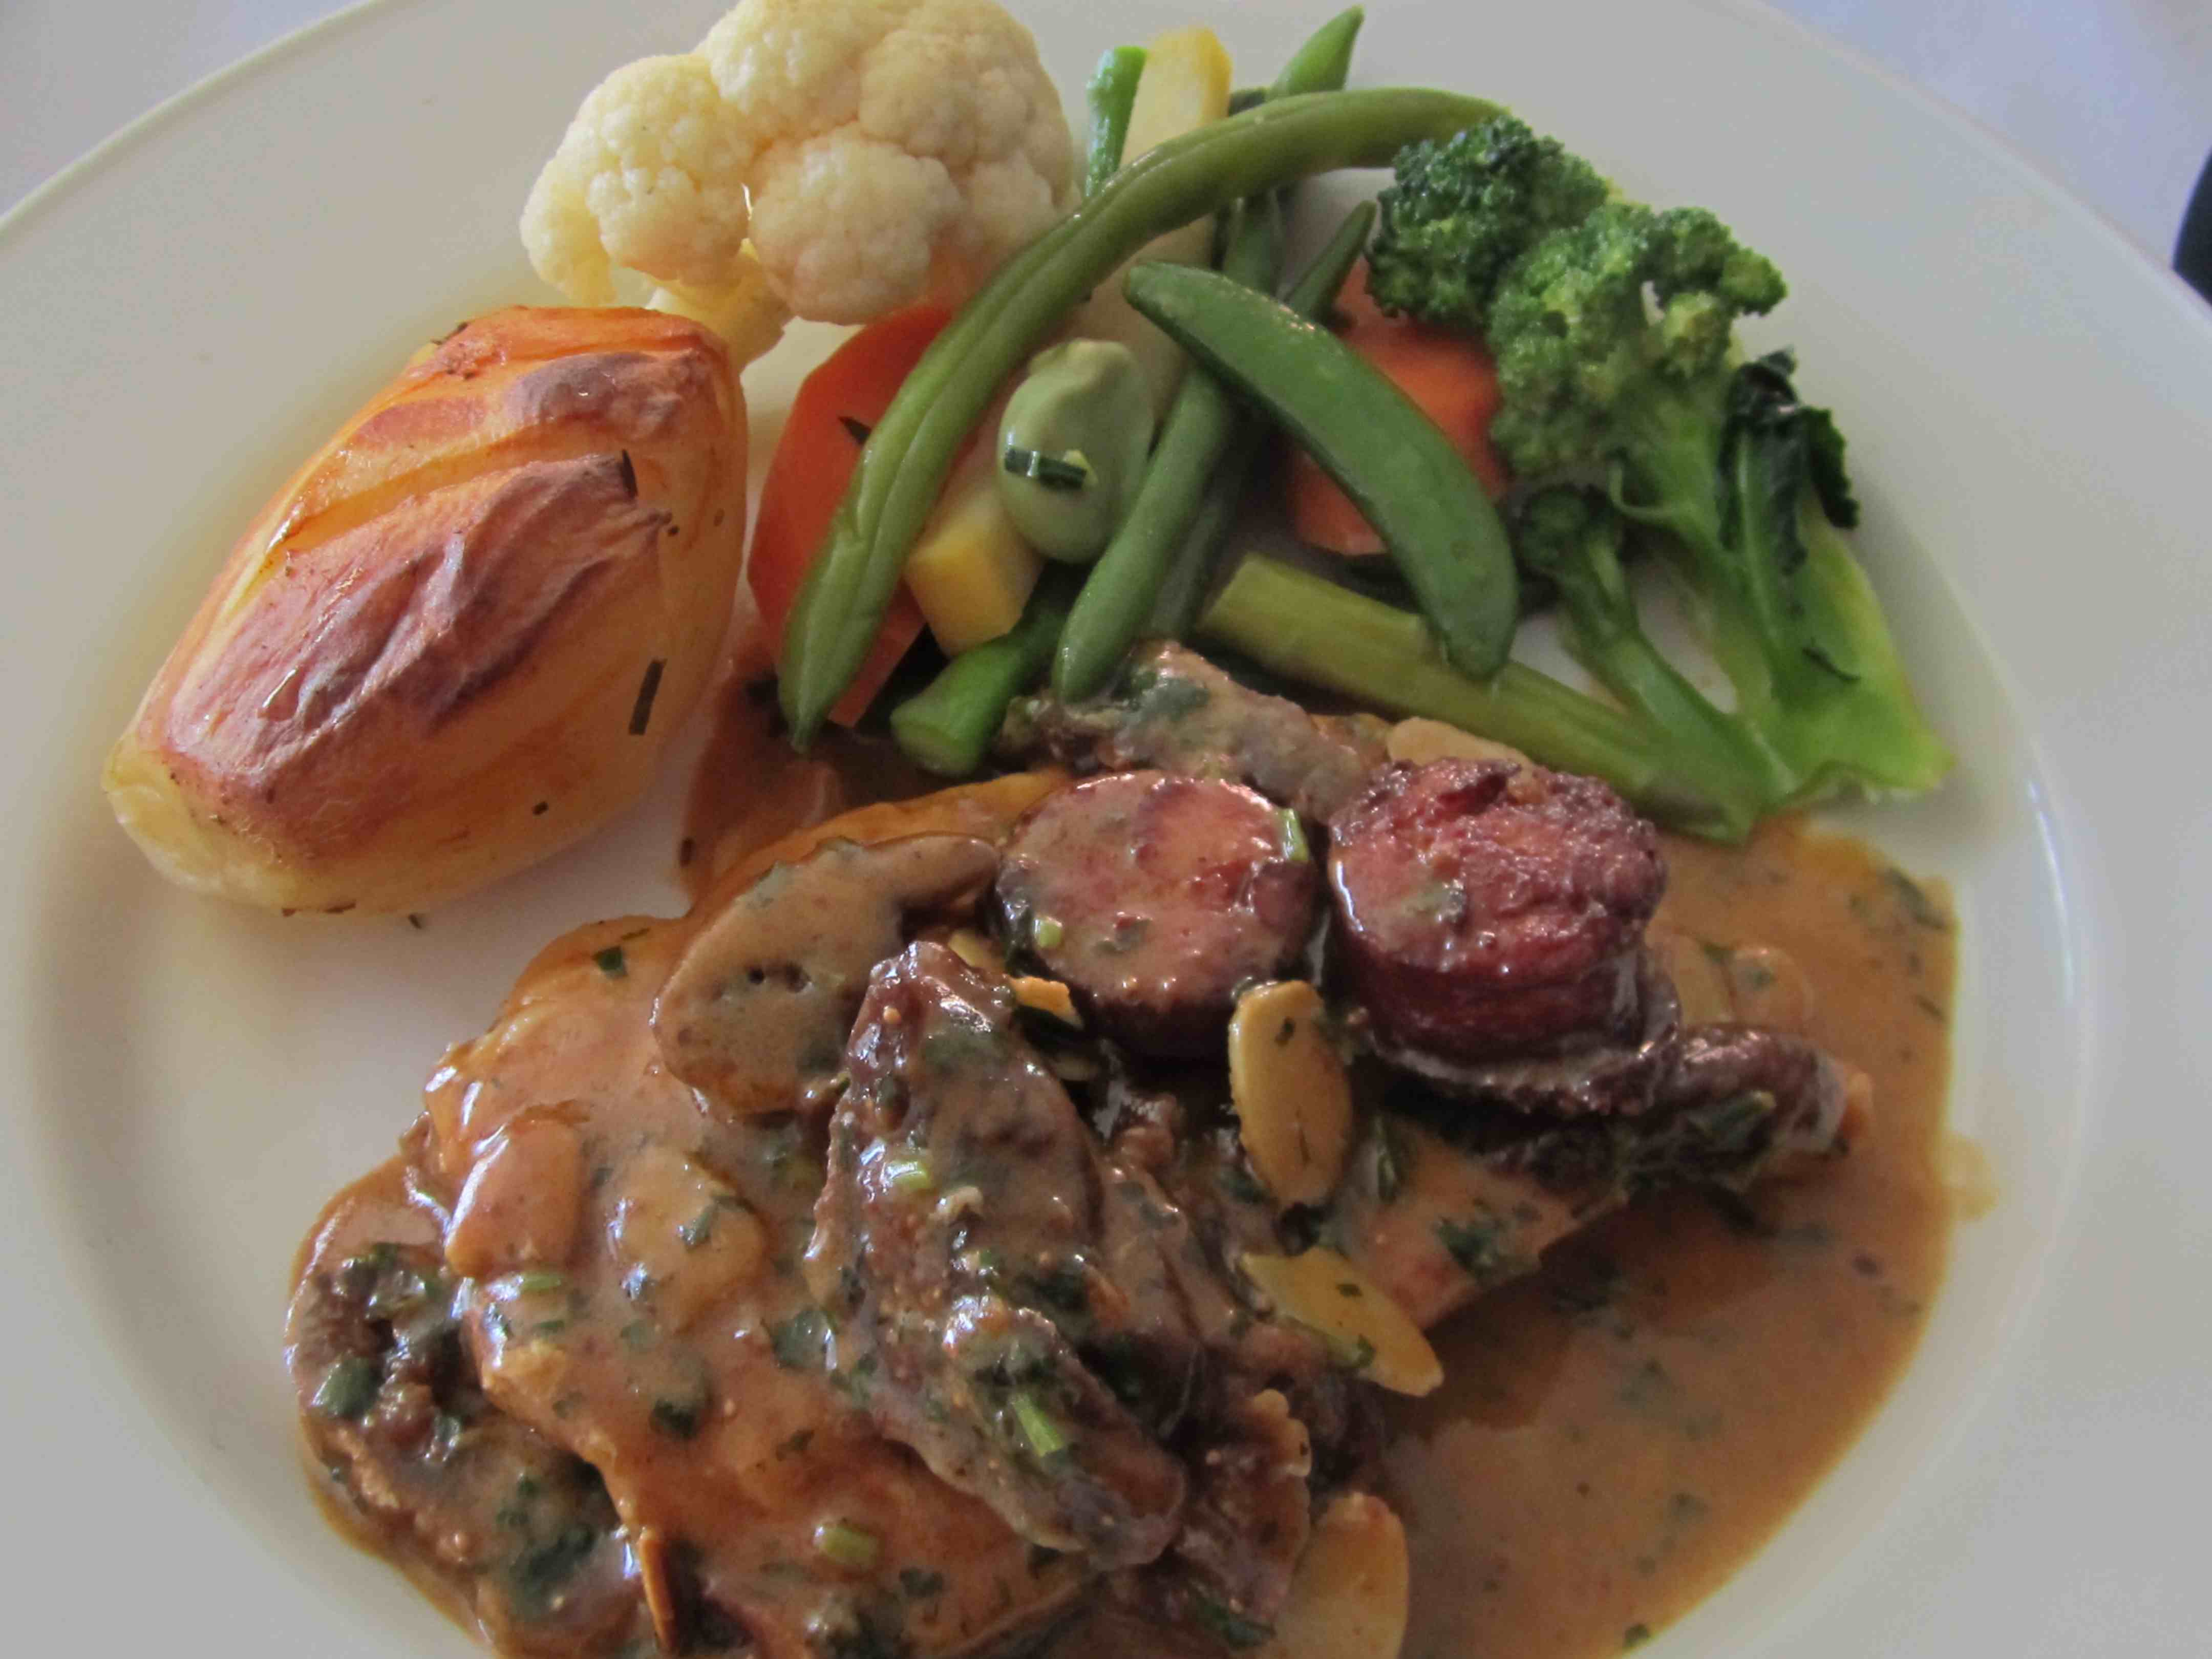 WEEKLY LUNCH PICK: Warm up with a hearty Portuguese lunch at Cafe Spiga